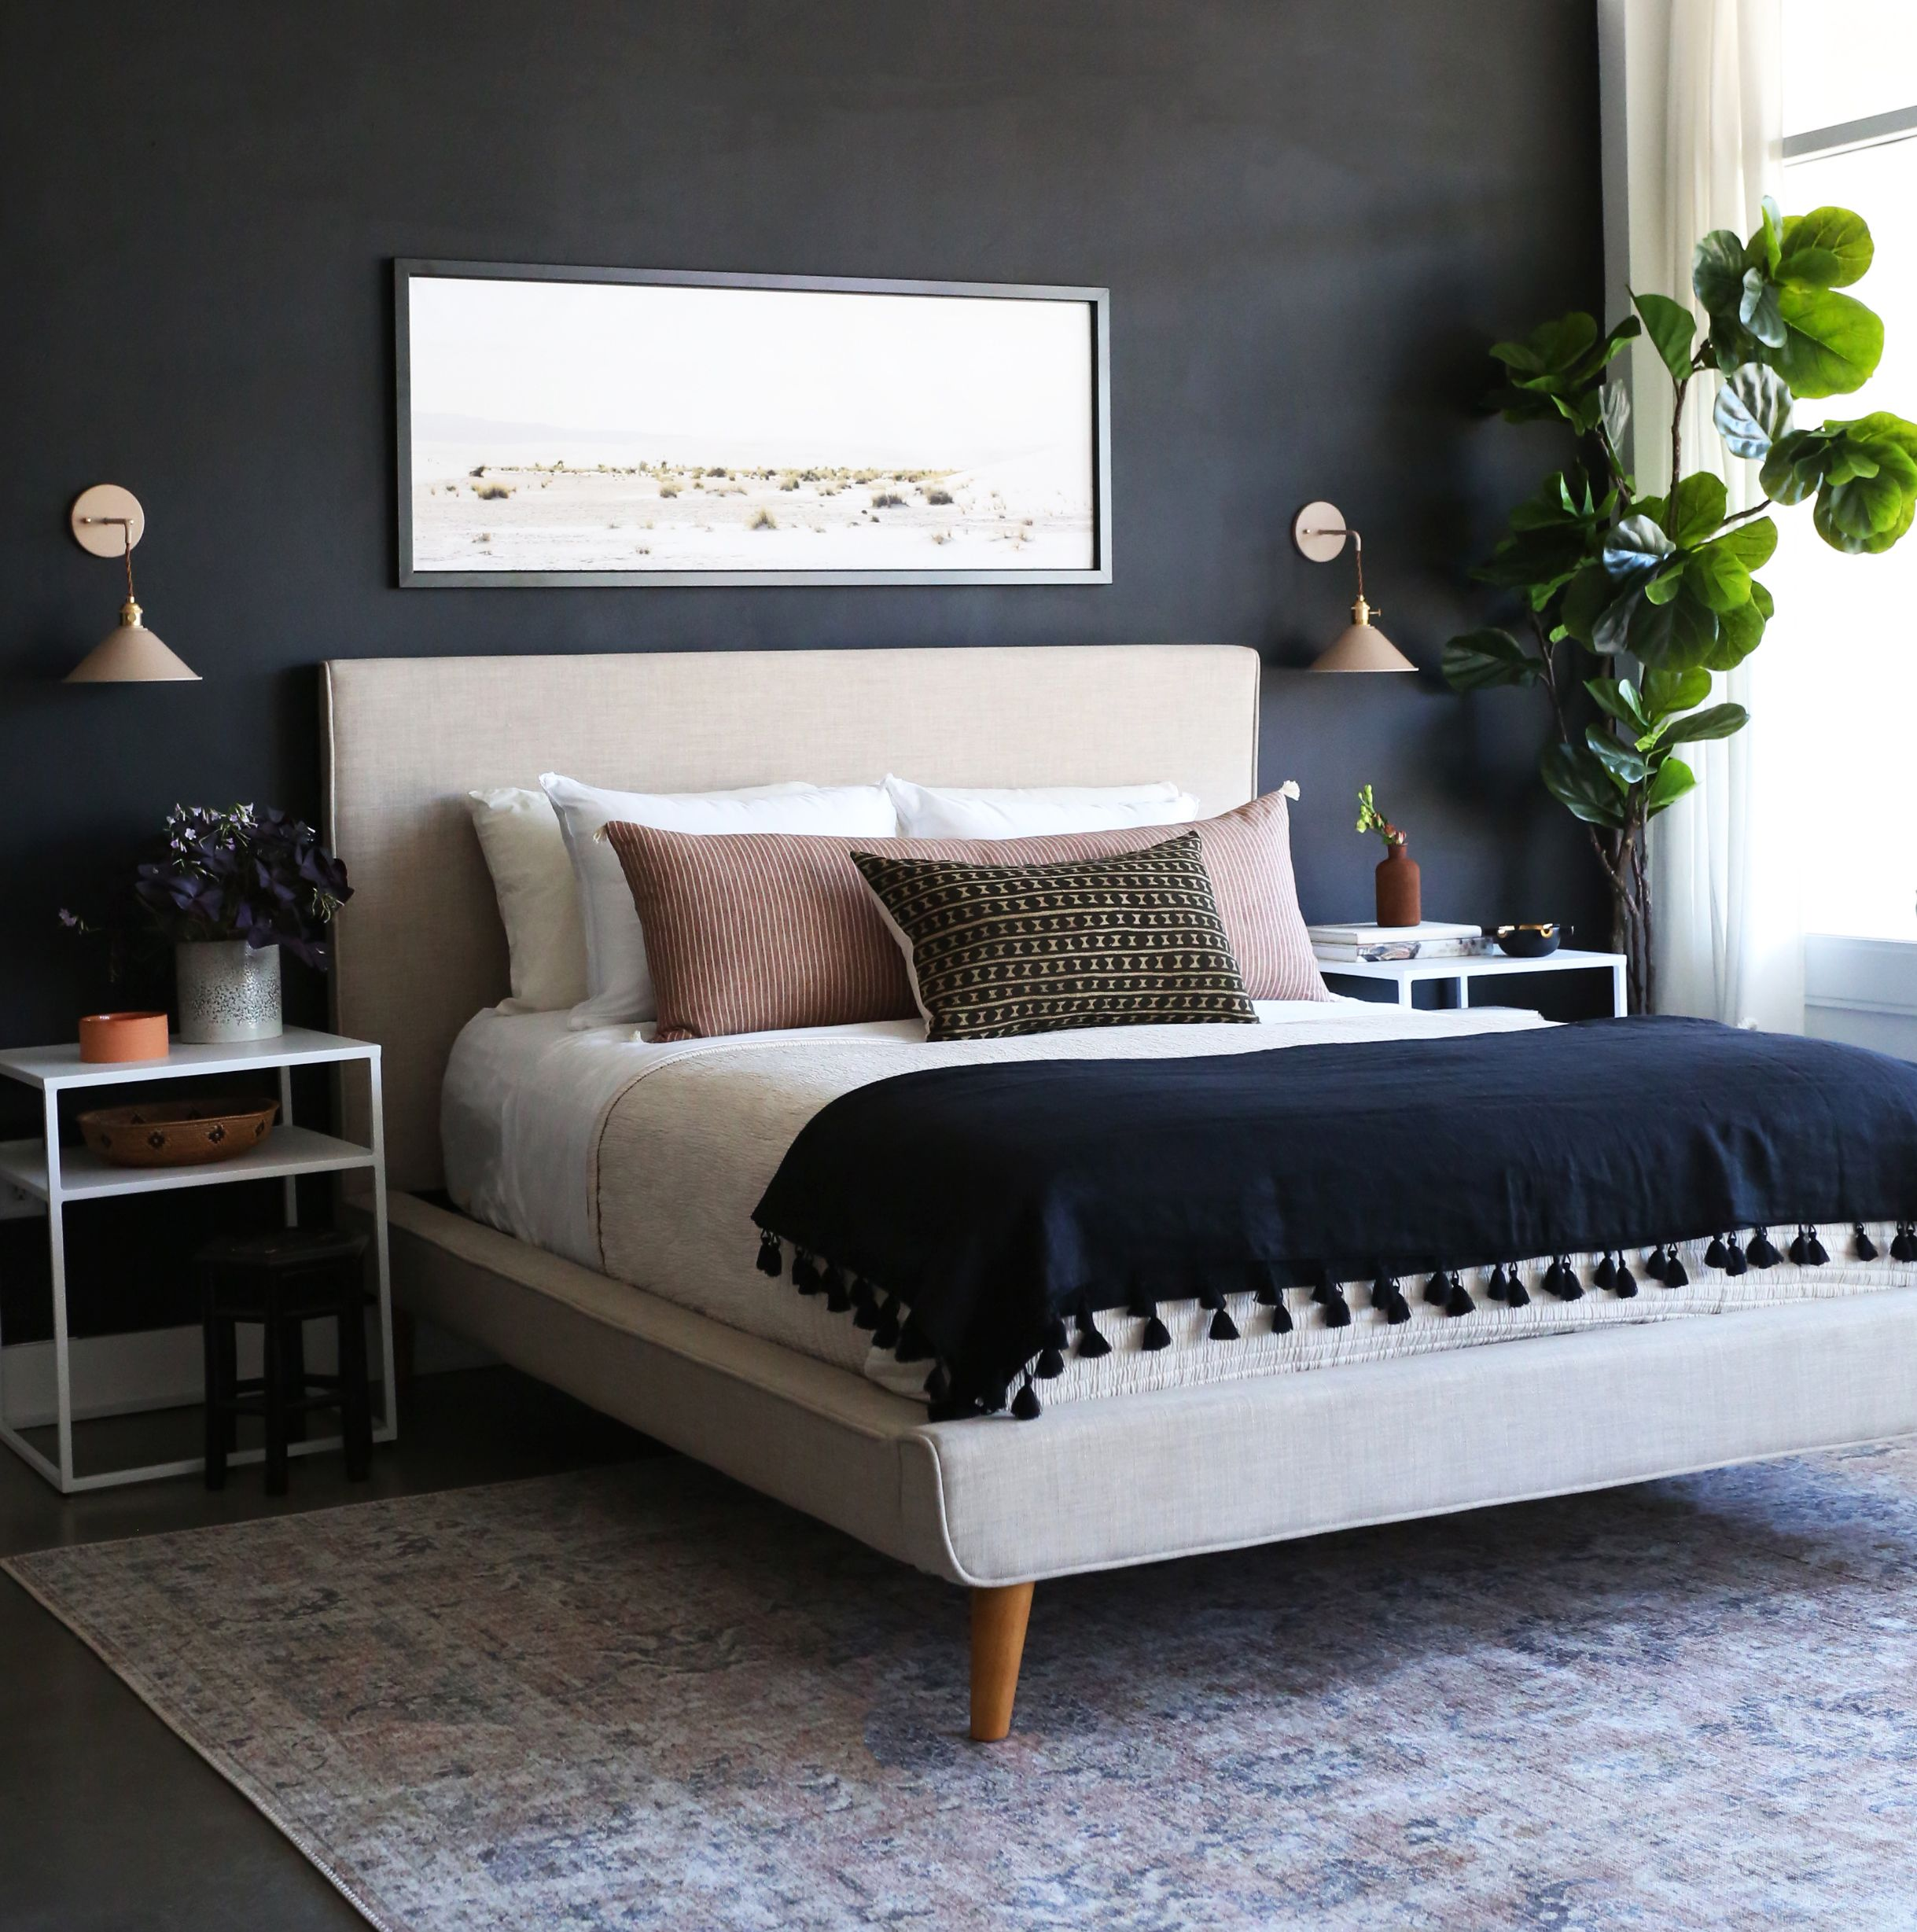 Living Room Decorideas Cozy: Updating Your Bedroom For Spring